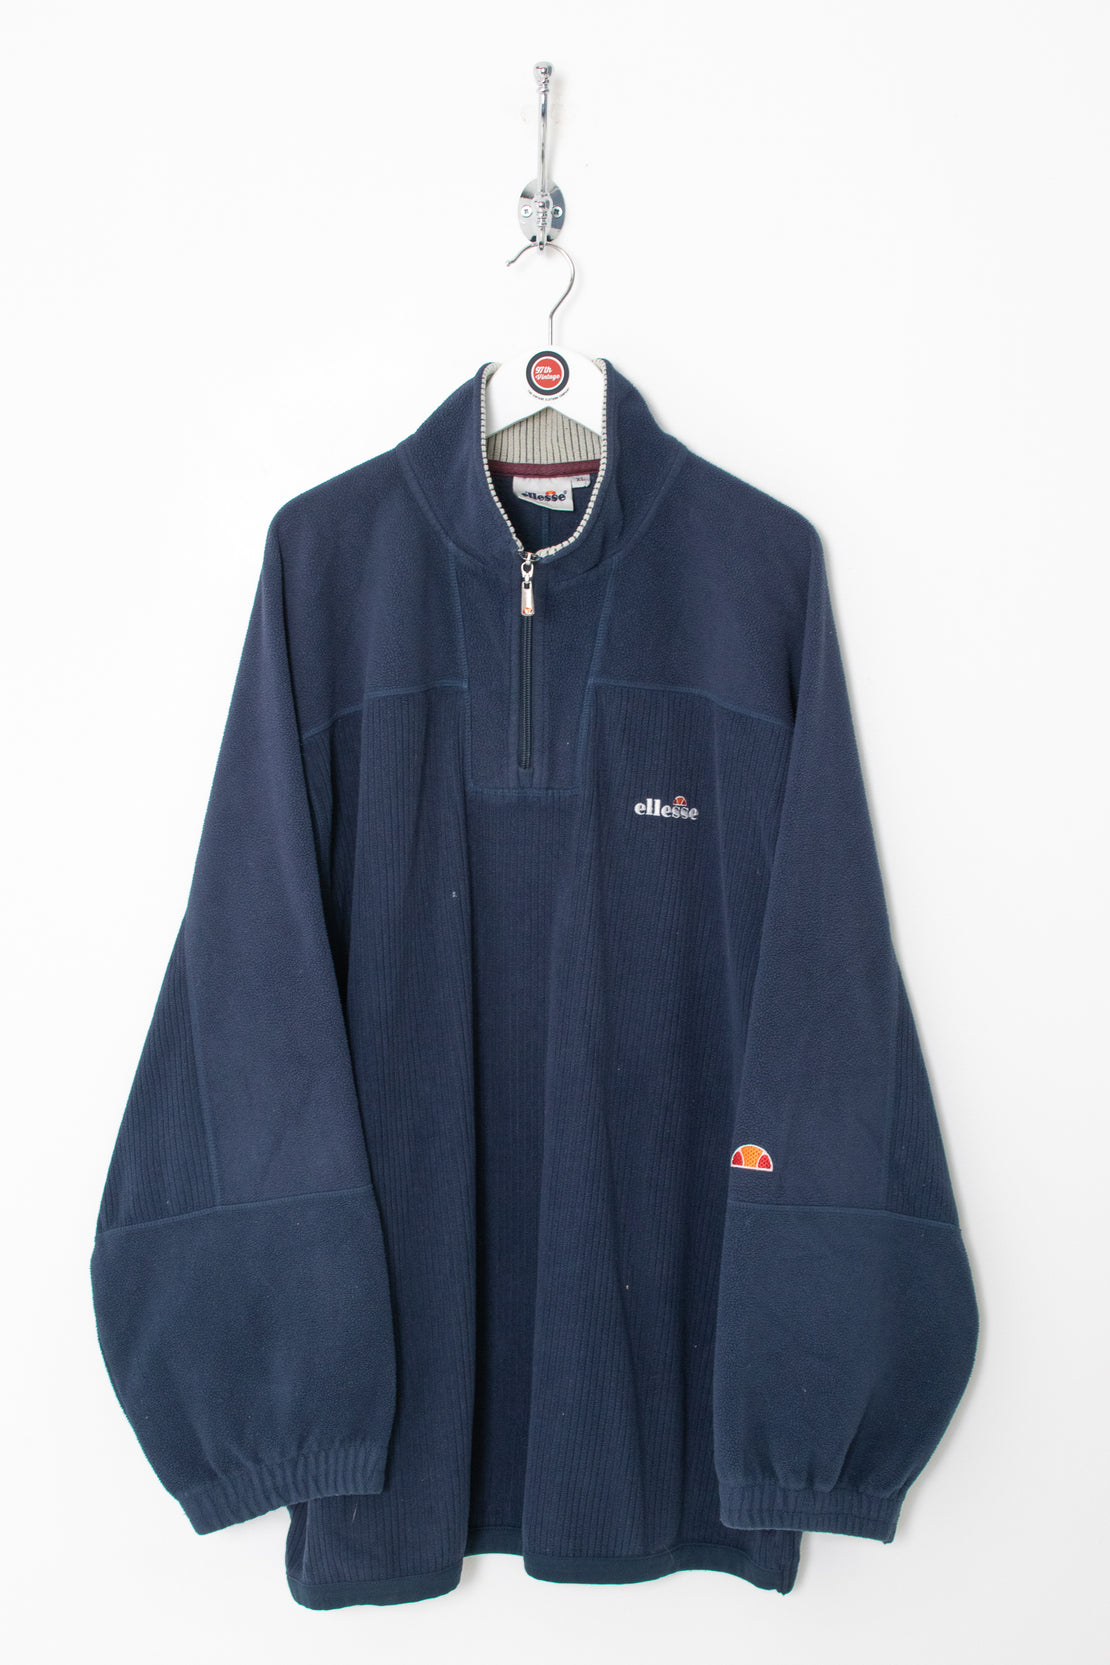 Ellesse Fleece (XL)